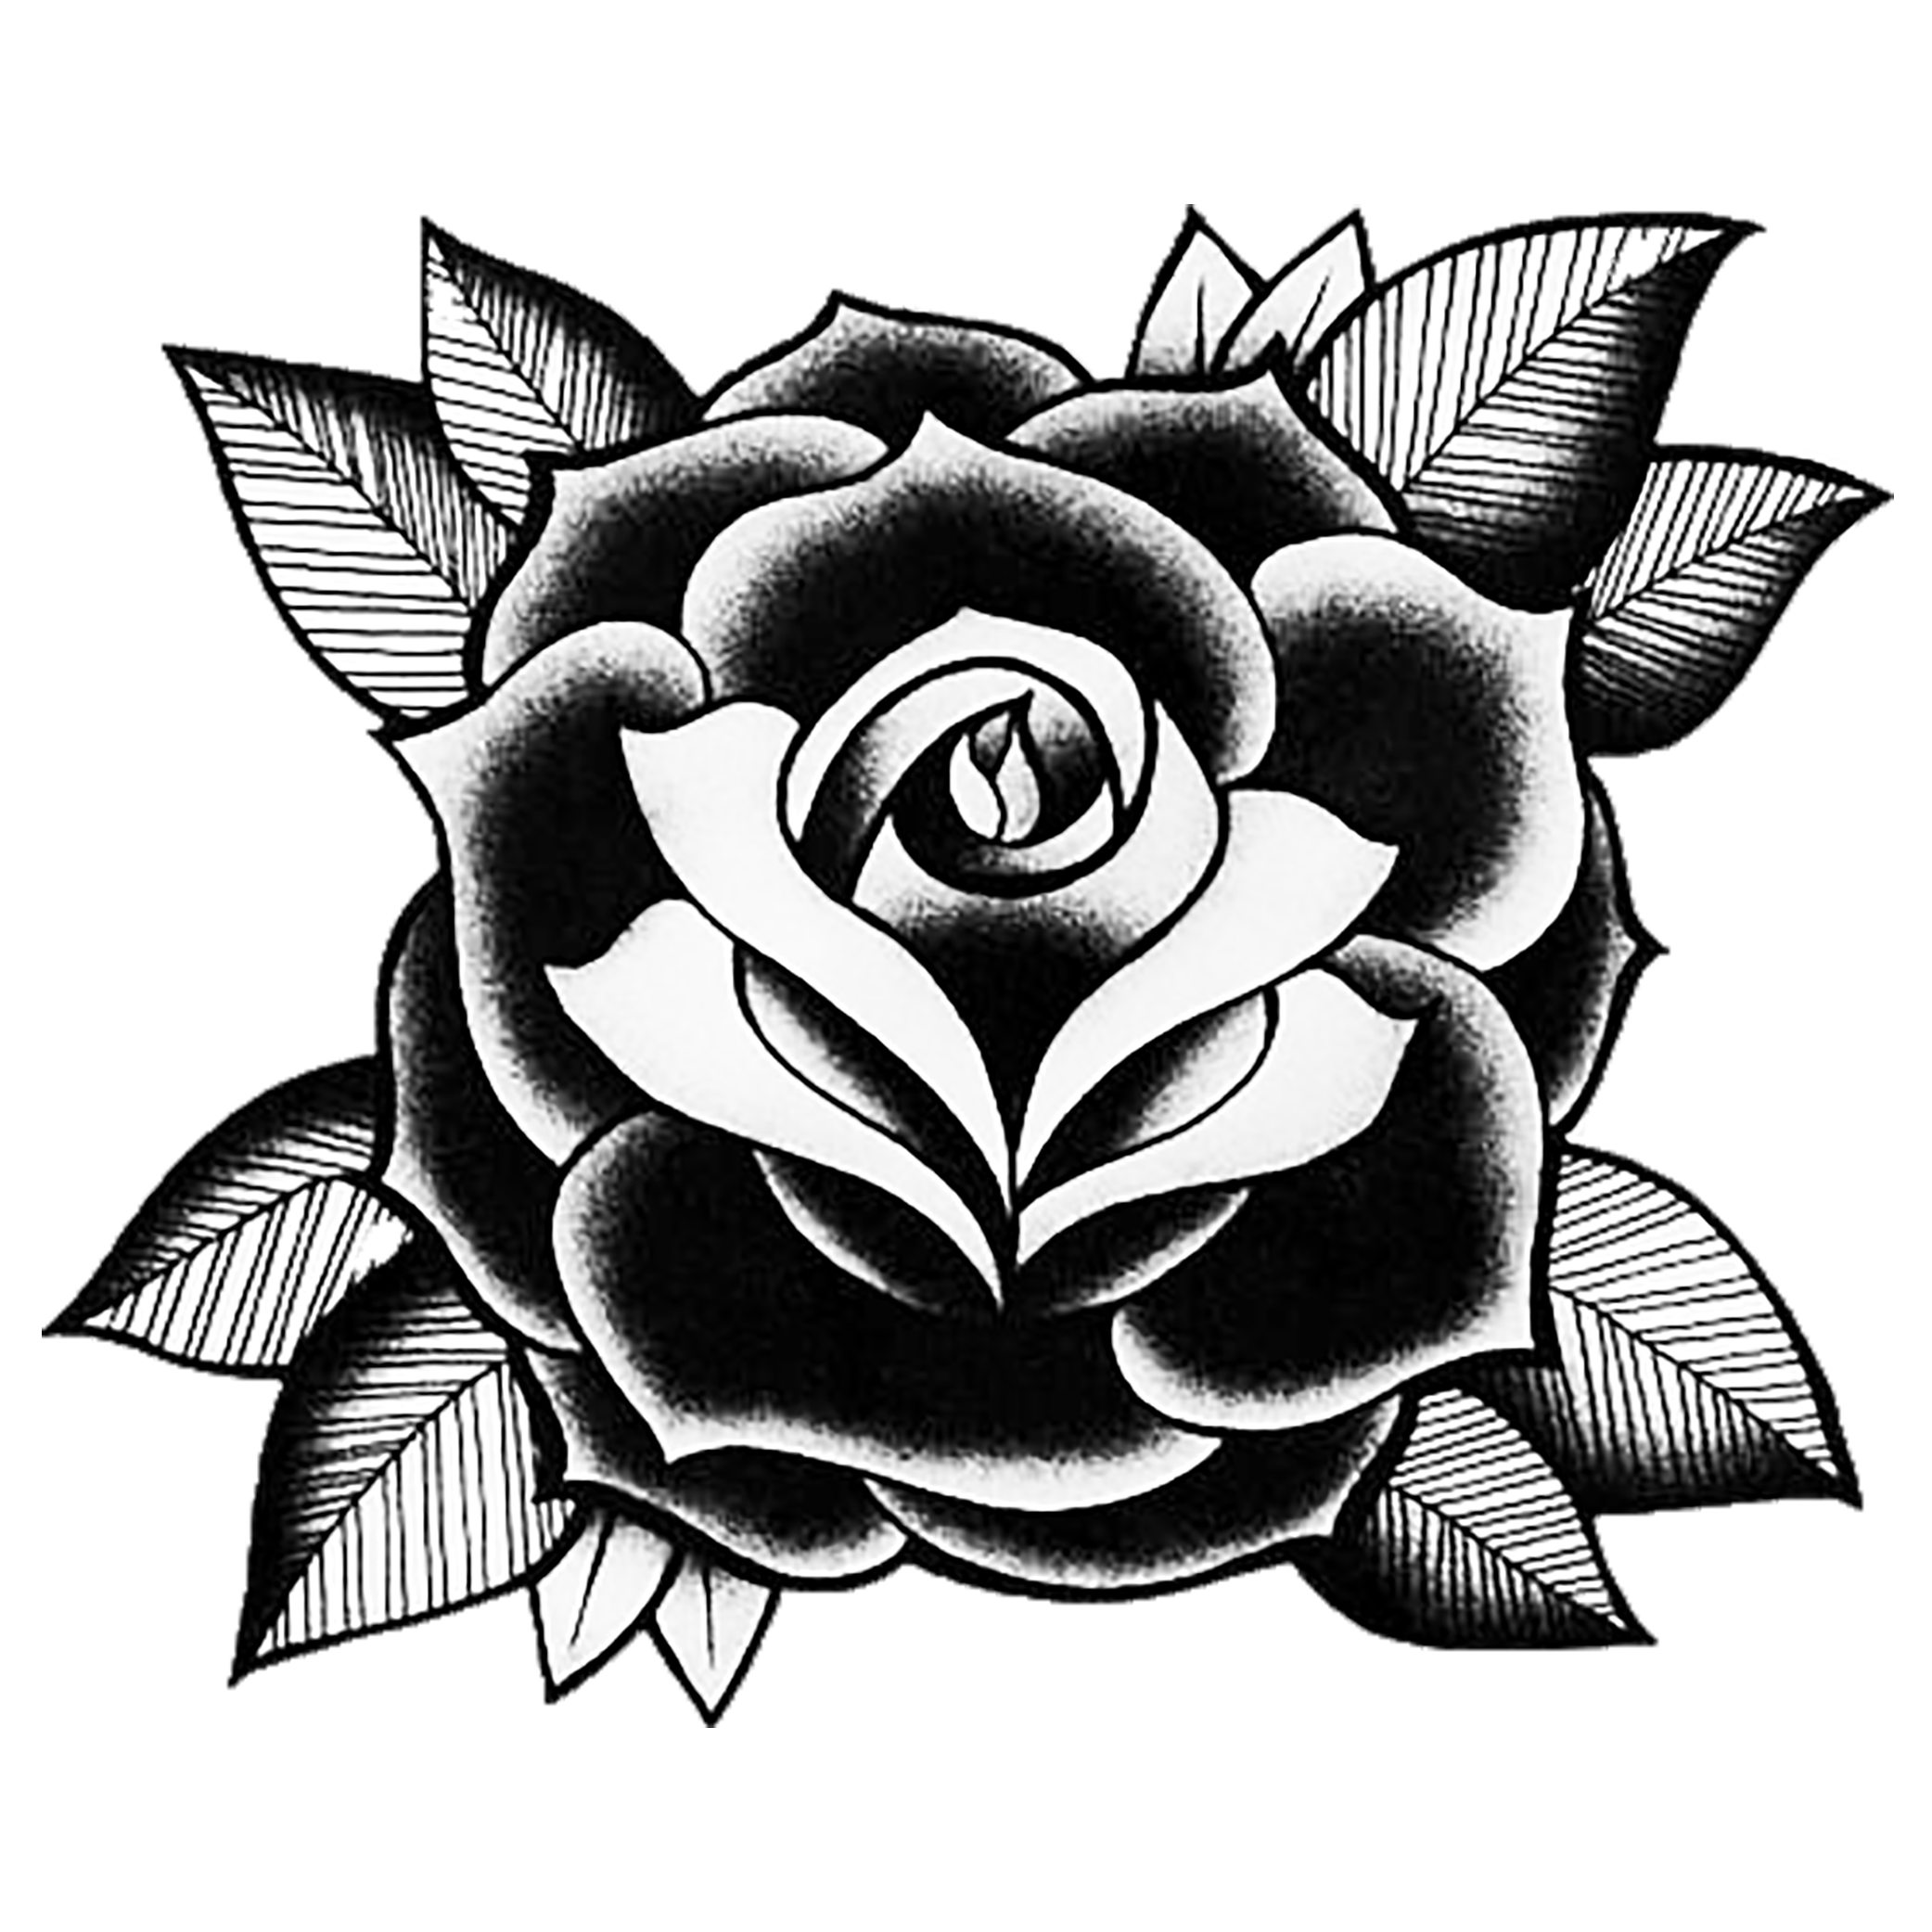 Pin by Rajat Onethakur on Tattoo Designs | Traditional ... - Black and White Rose Tattoos